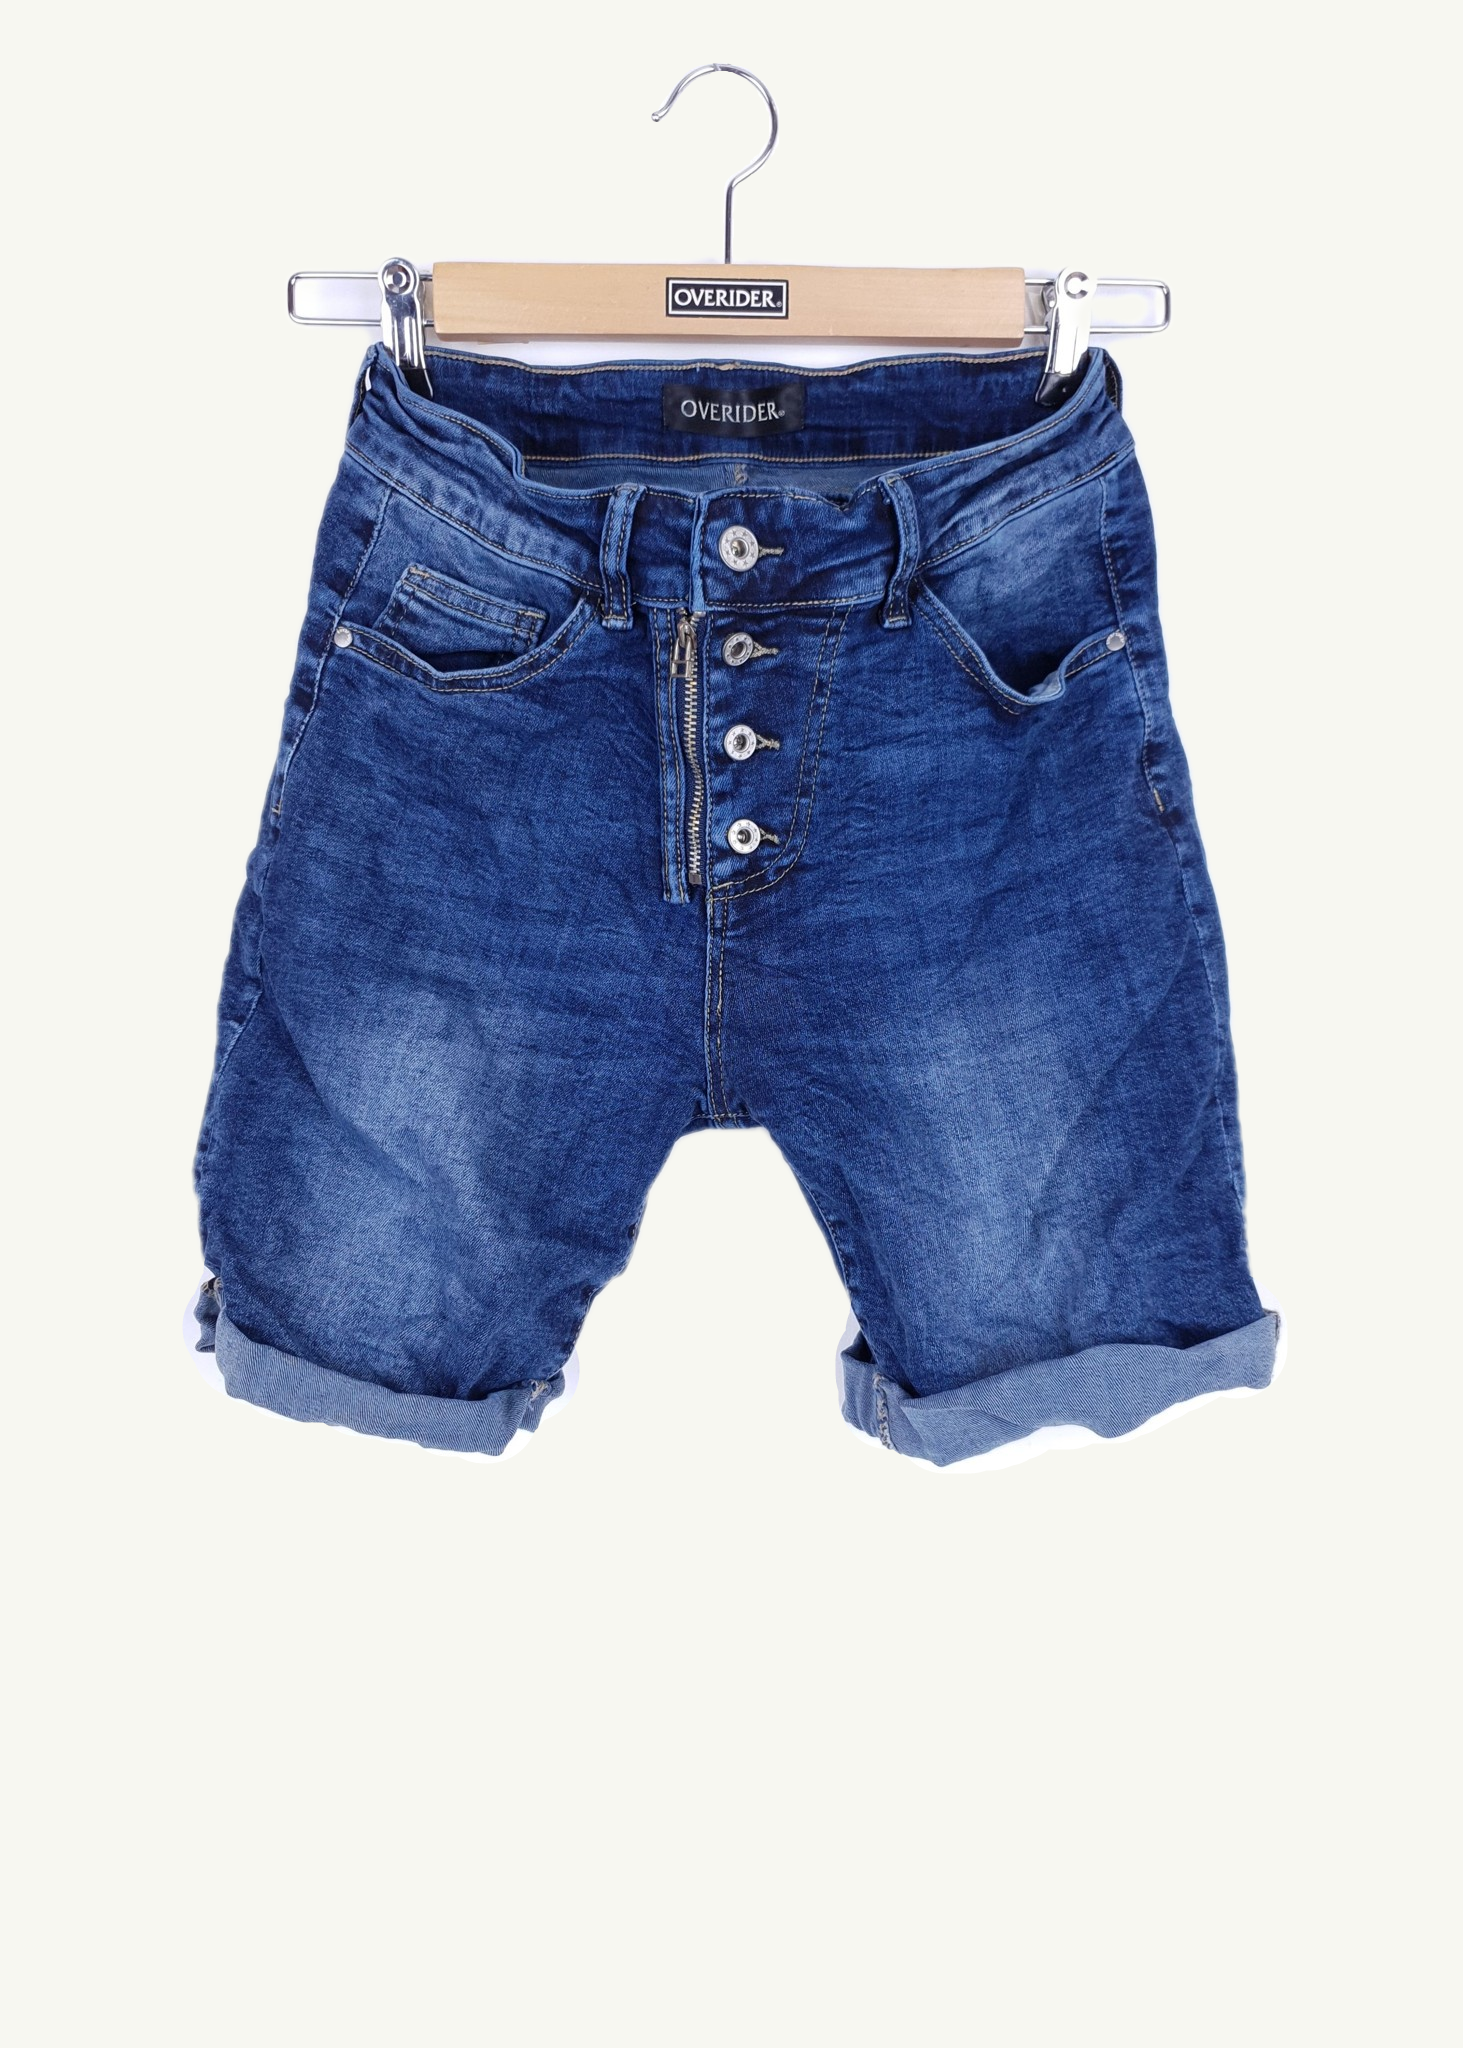 INGA  - Denim Shorts with Zip & Buttons - Indigo